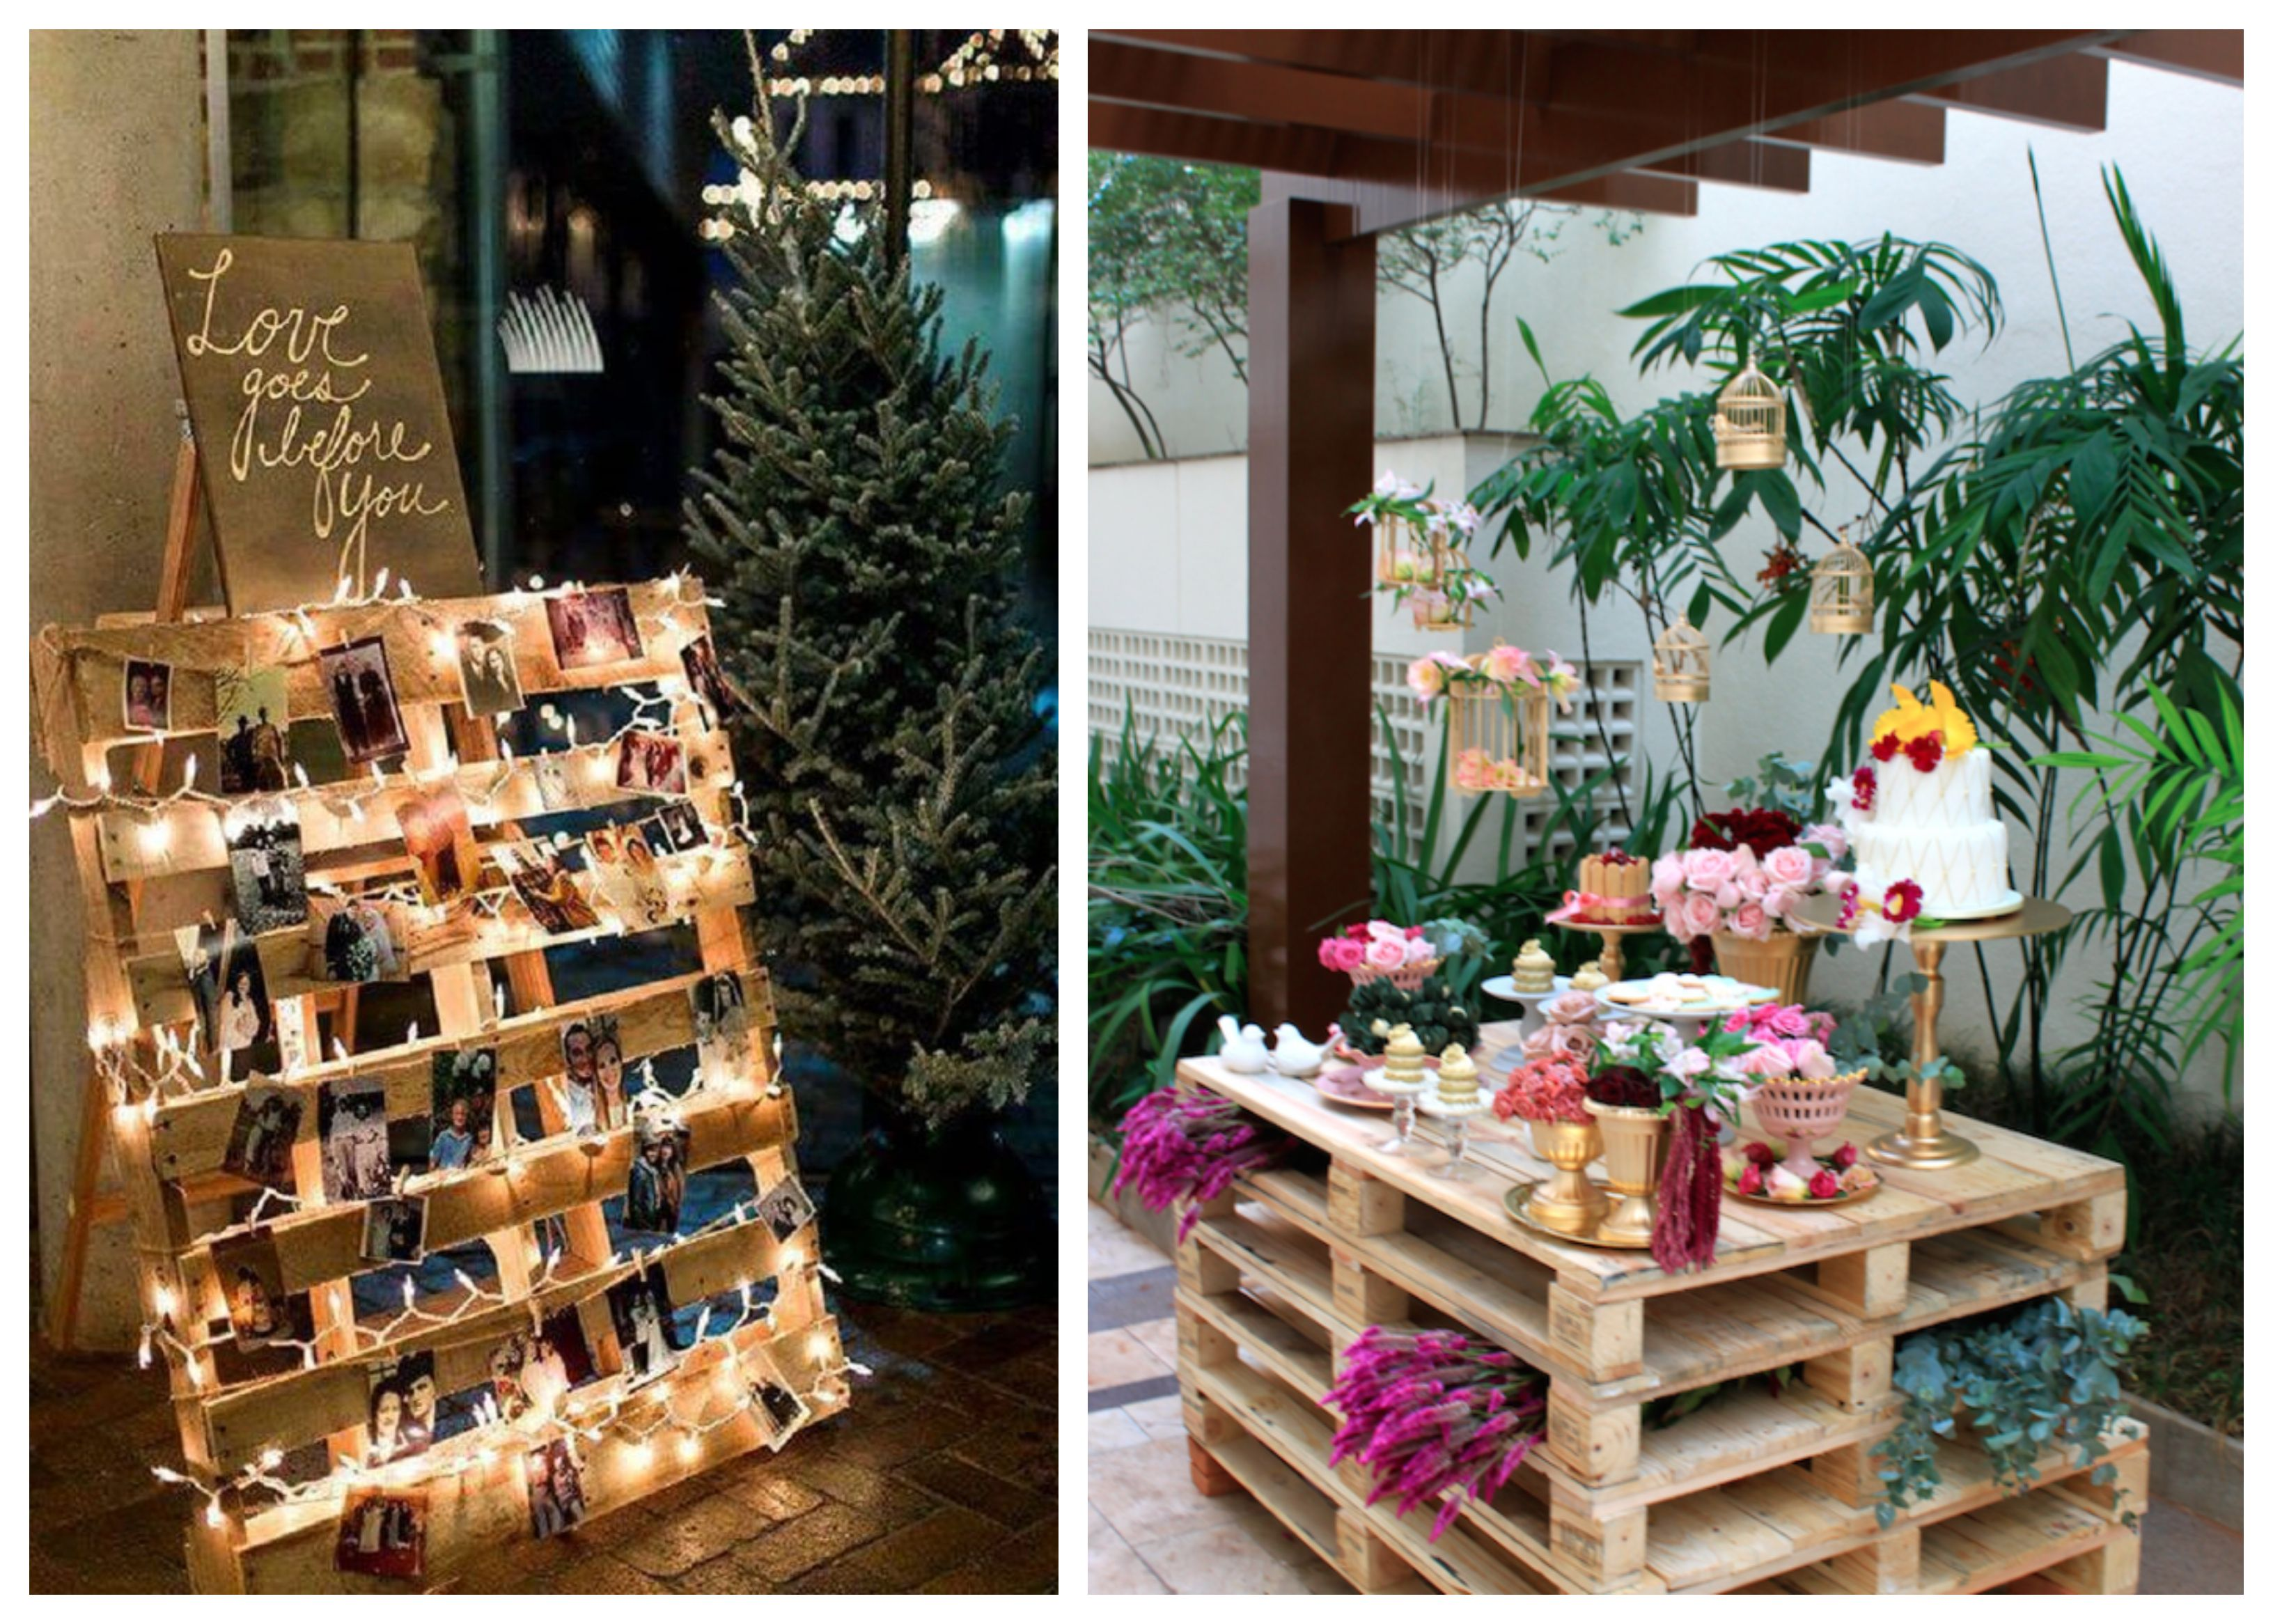 Upcycled Event Decor – Wooden Pallets